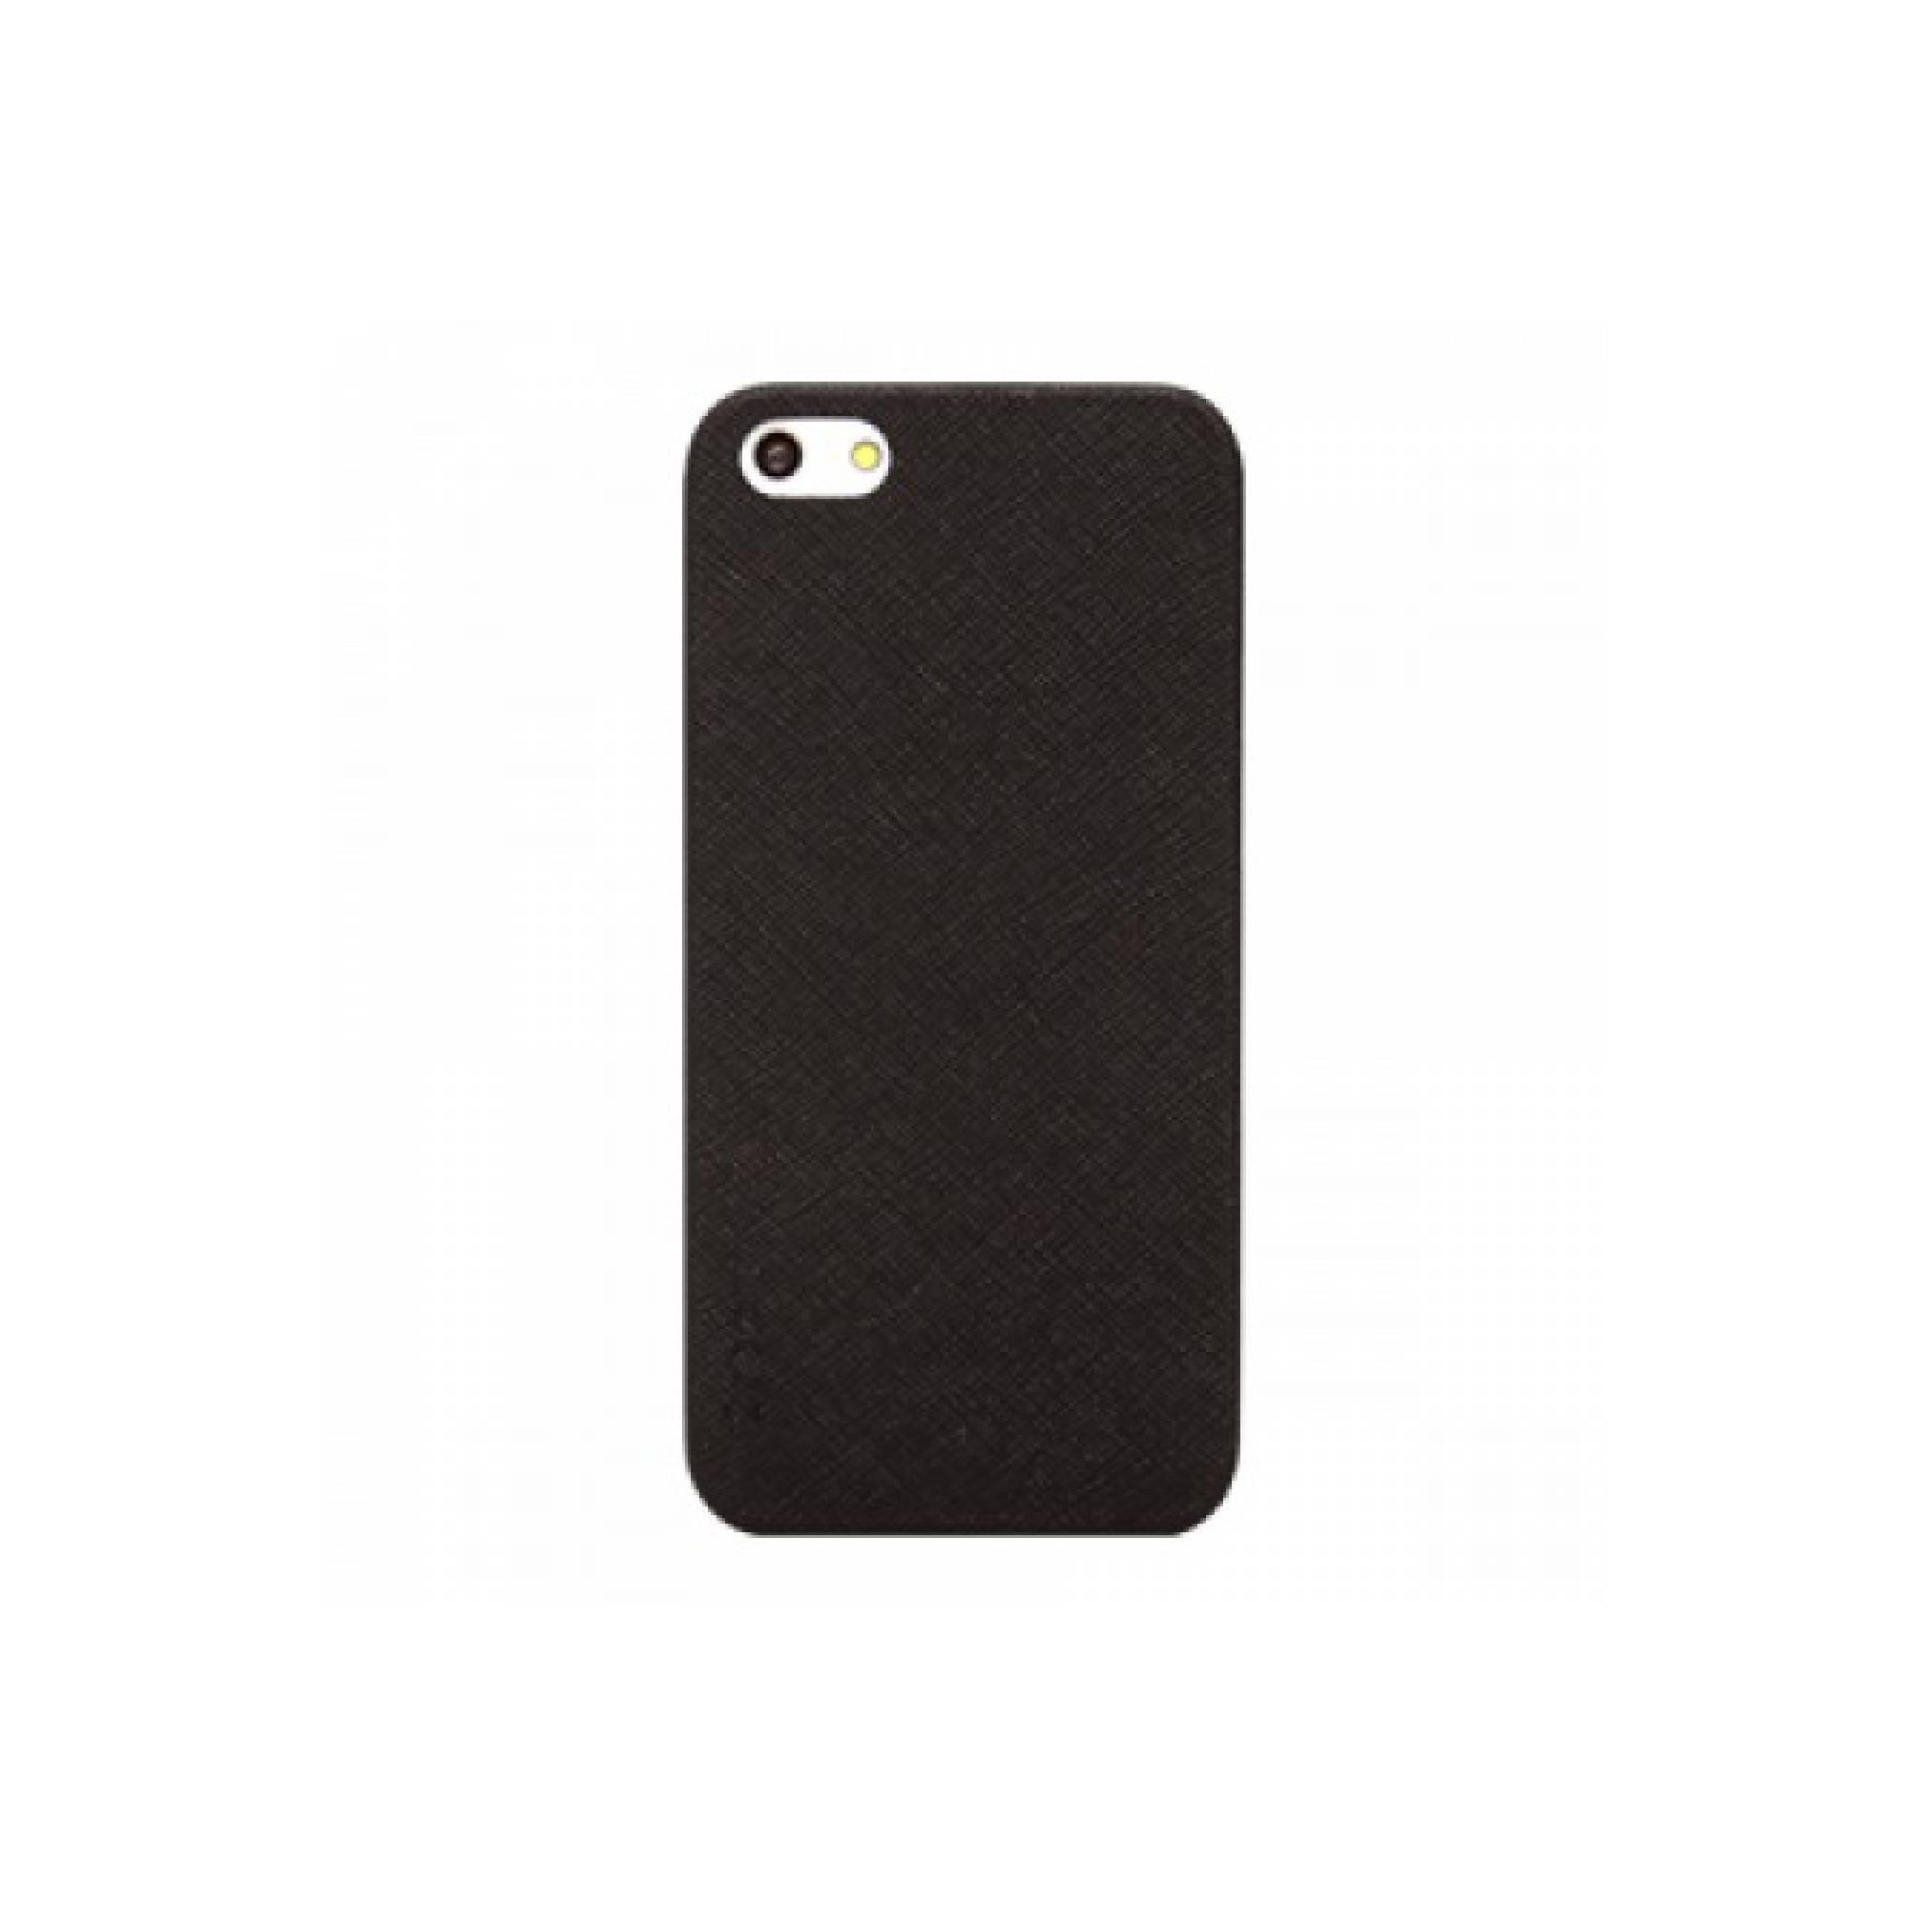 Colorant iPhone 5 Thin Leather Shell - Black [Packing Rusak]